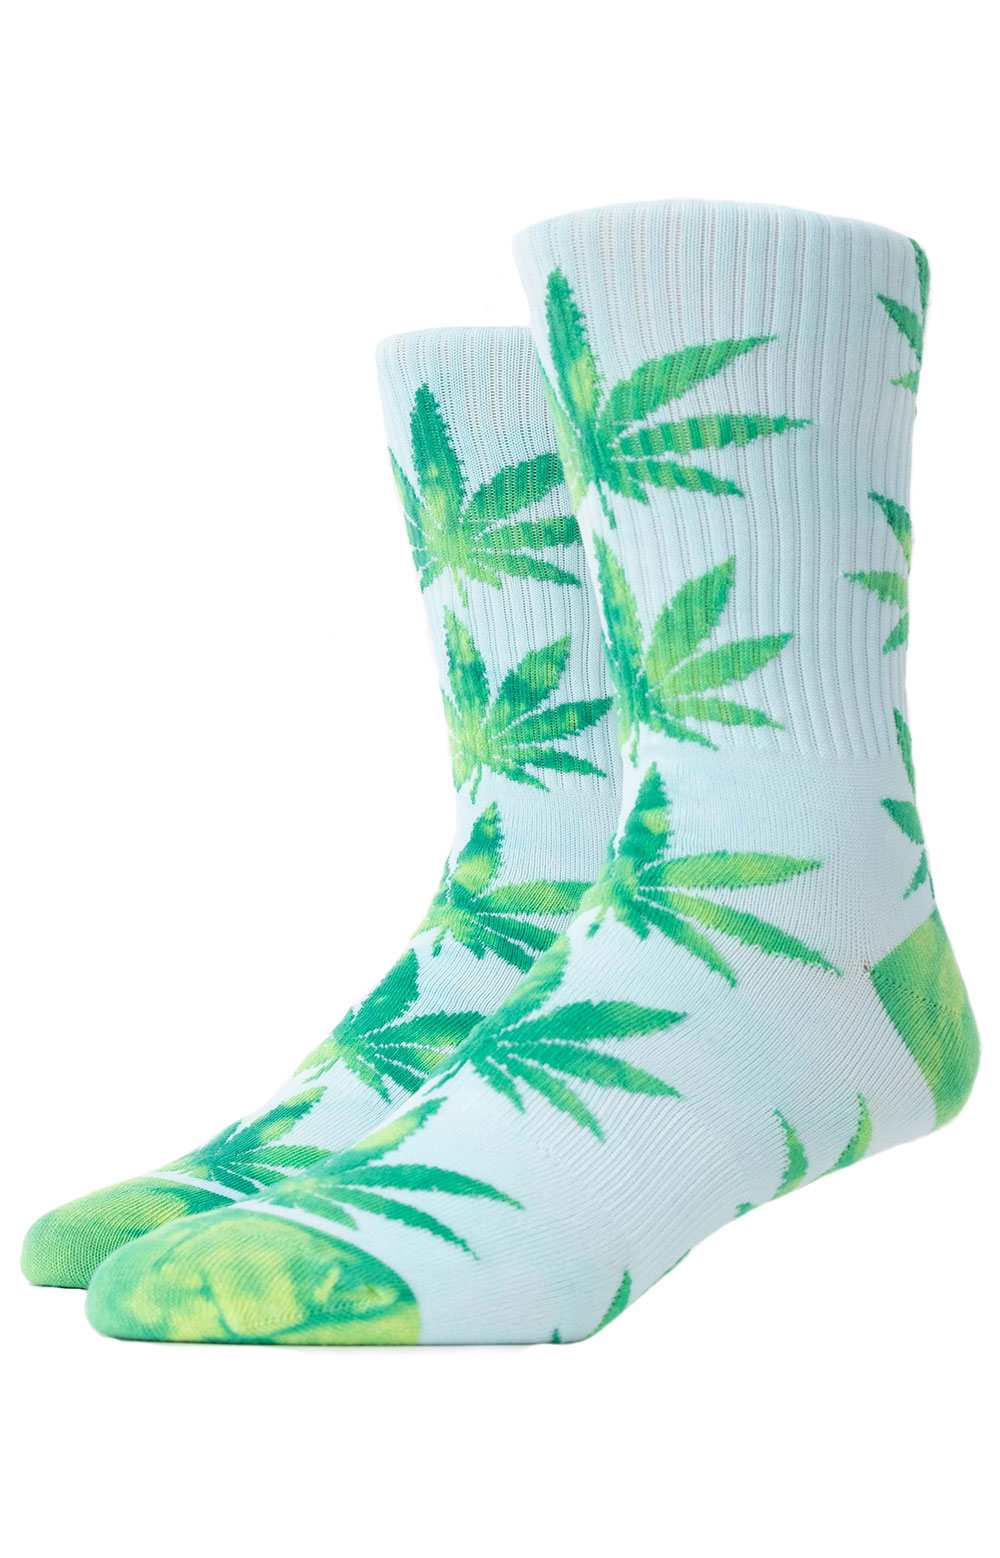 Tie Dye Plantlife Leaves Socks - Aurora Yellow